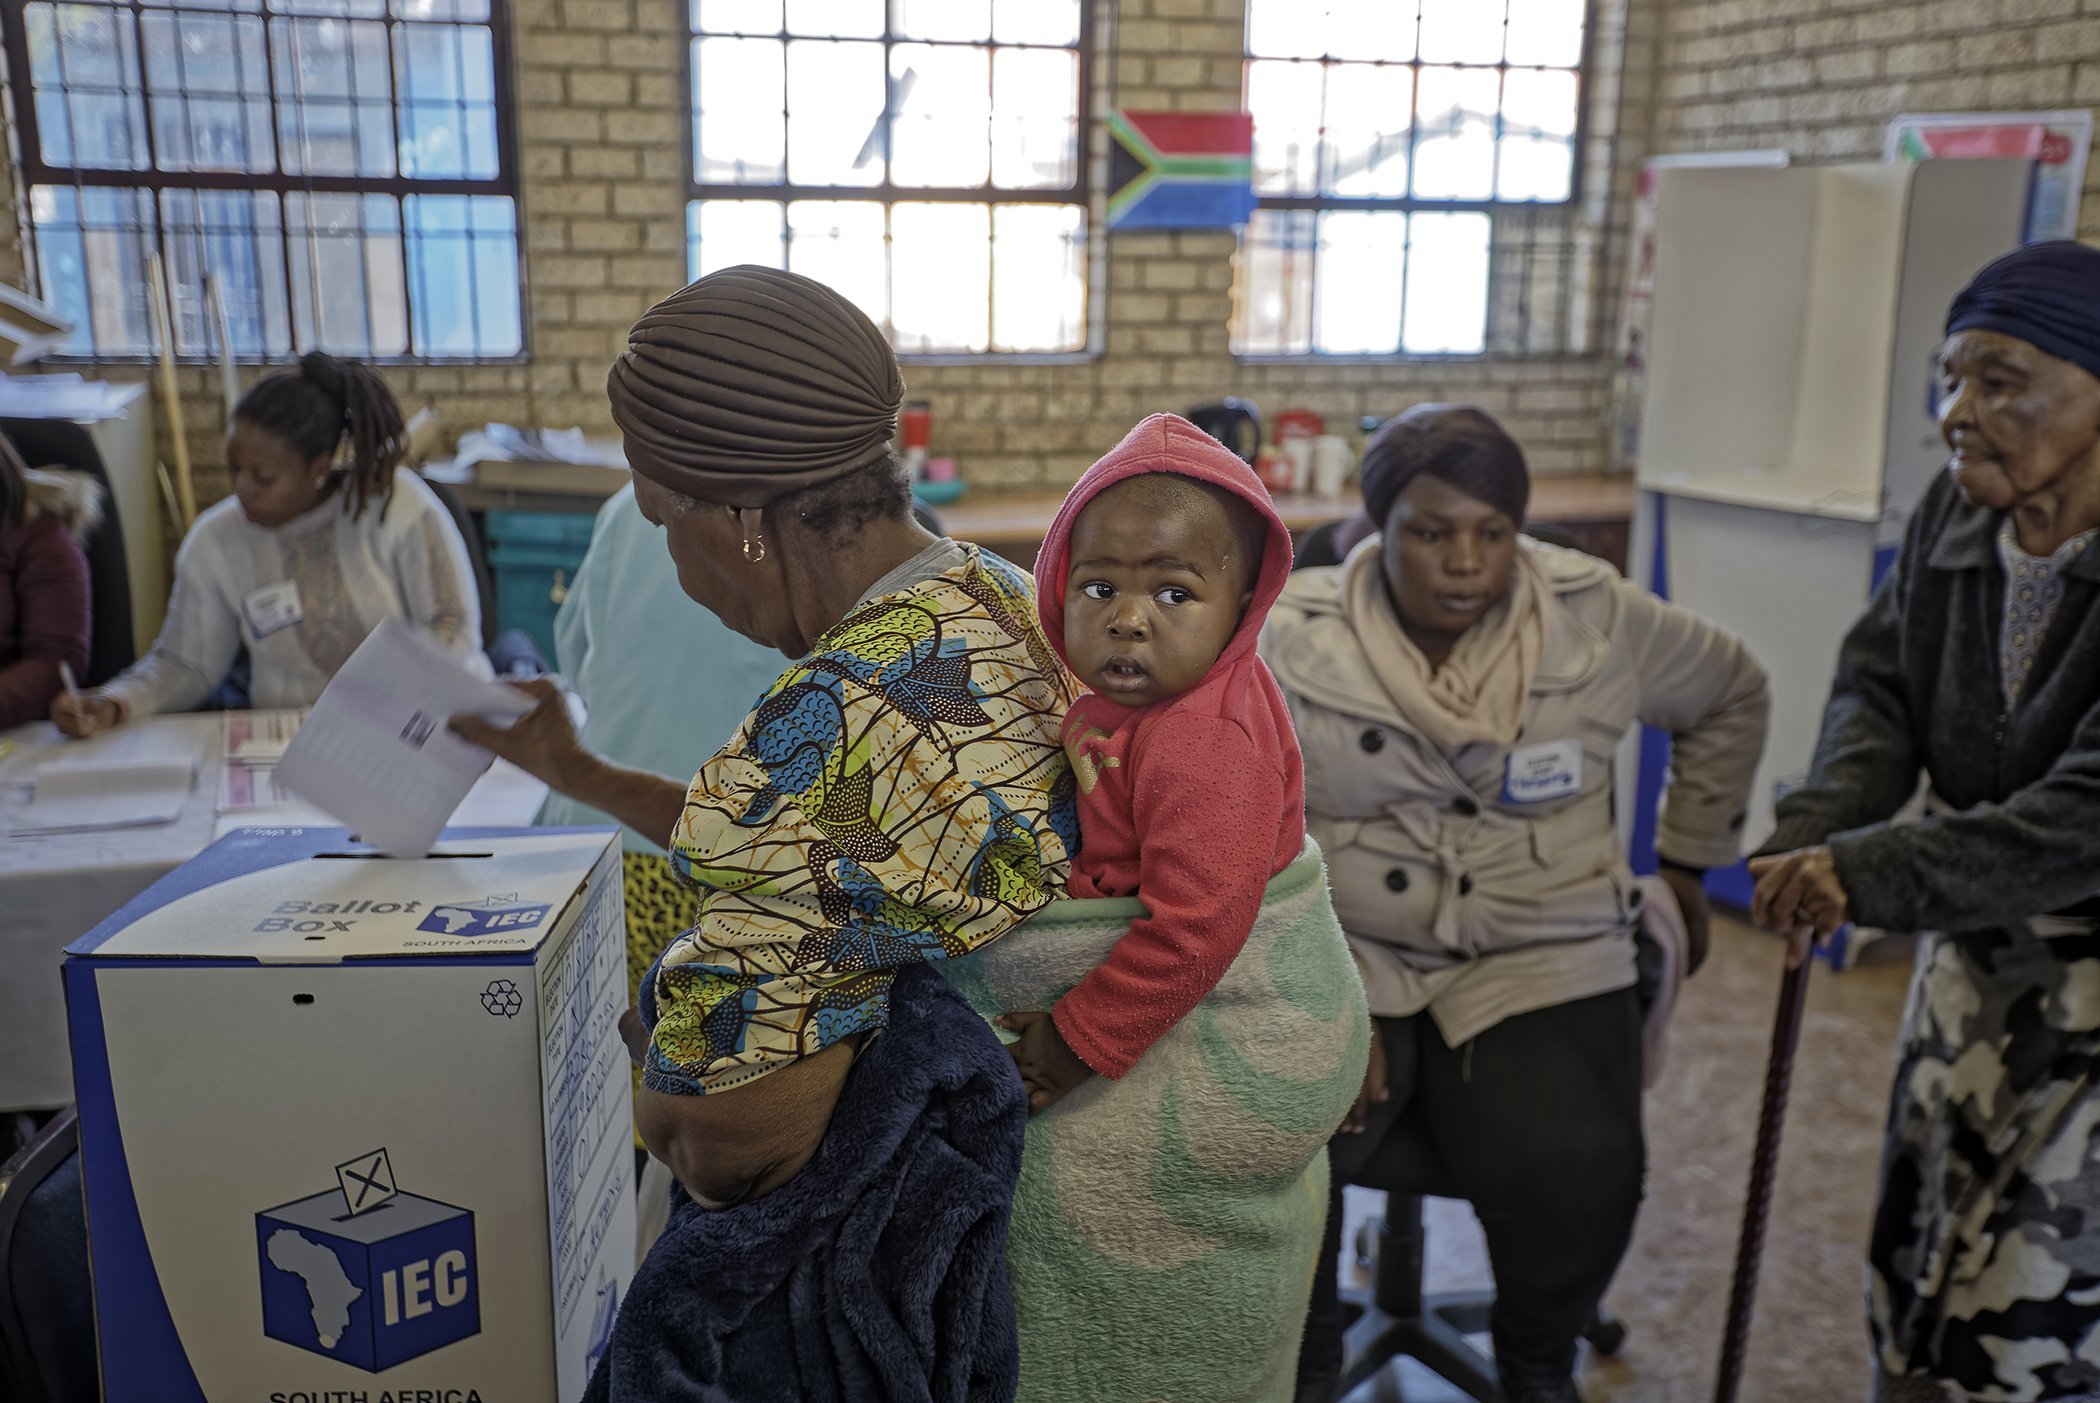 South-Africa-Elections-001.jpg